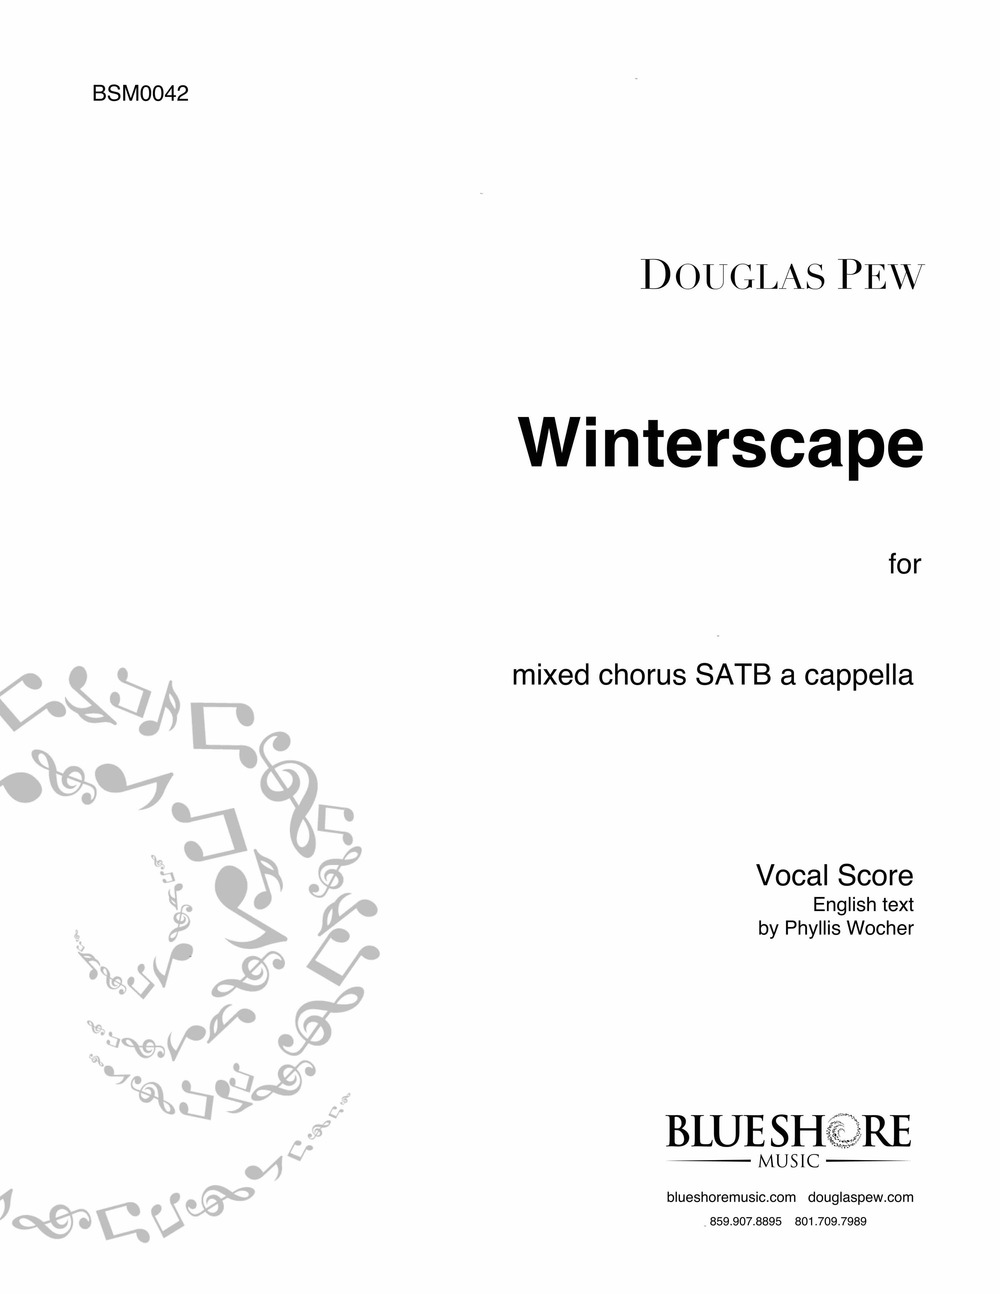 Pew_BSM0042_Winterscape_SATB_cover_smaller.jpg